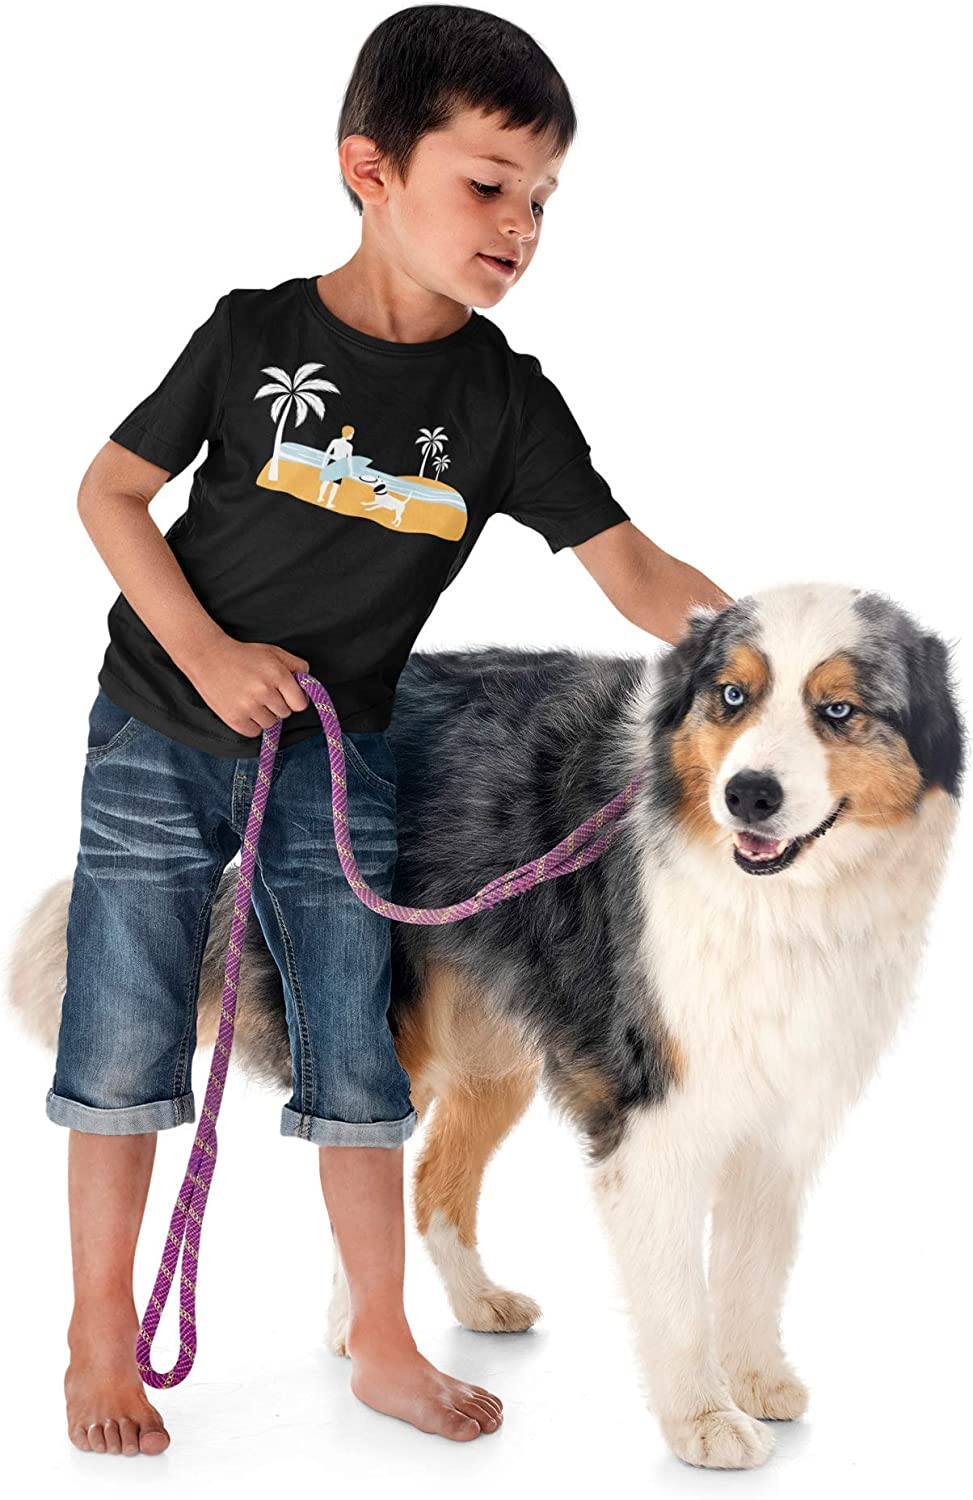 10/% of Sales Donated to Animal Shelters Youth Sizes 4-16 Boy/'s Beach T-Shirt by Fetch the Sun Great Gift for Dog Loving Kids /& Surfers